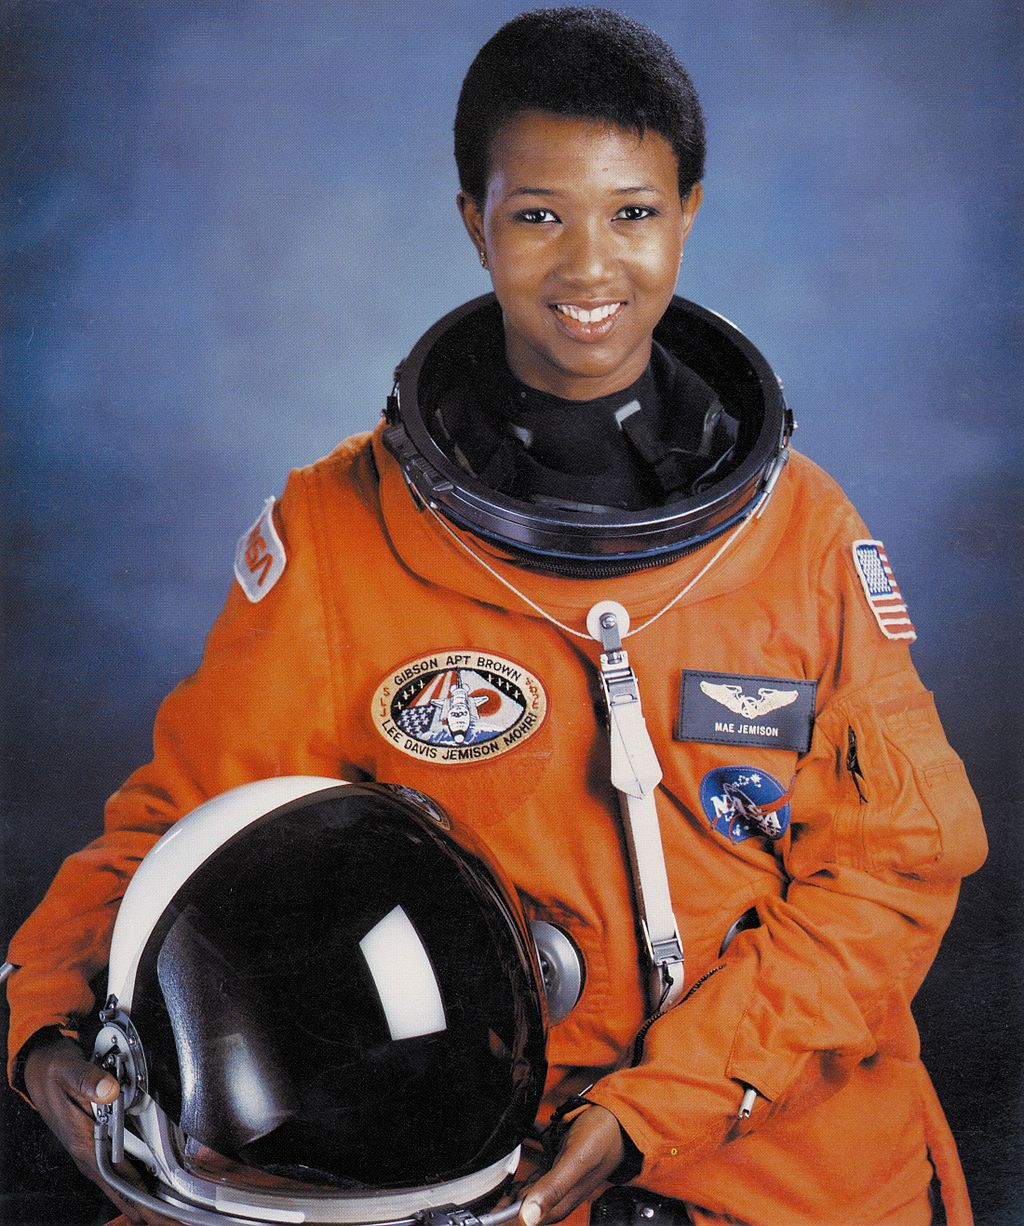 Photo portrait of Dr. Mae C Jemison, first African-American woman in space. Public domain image.